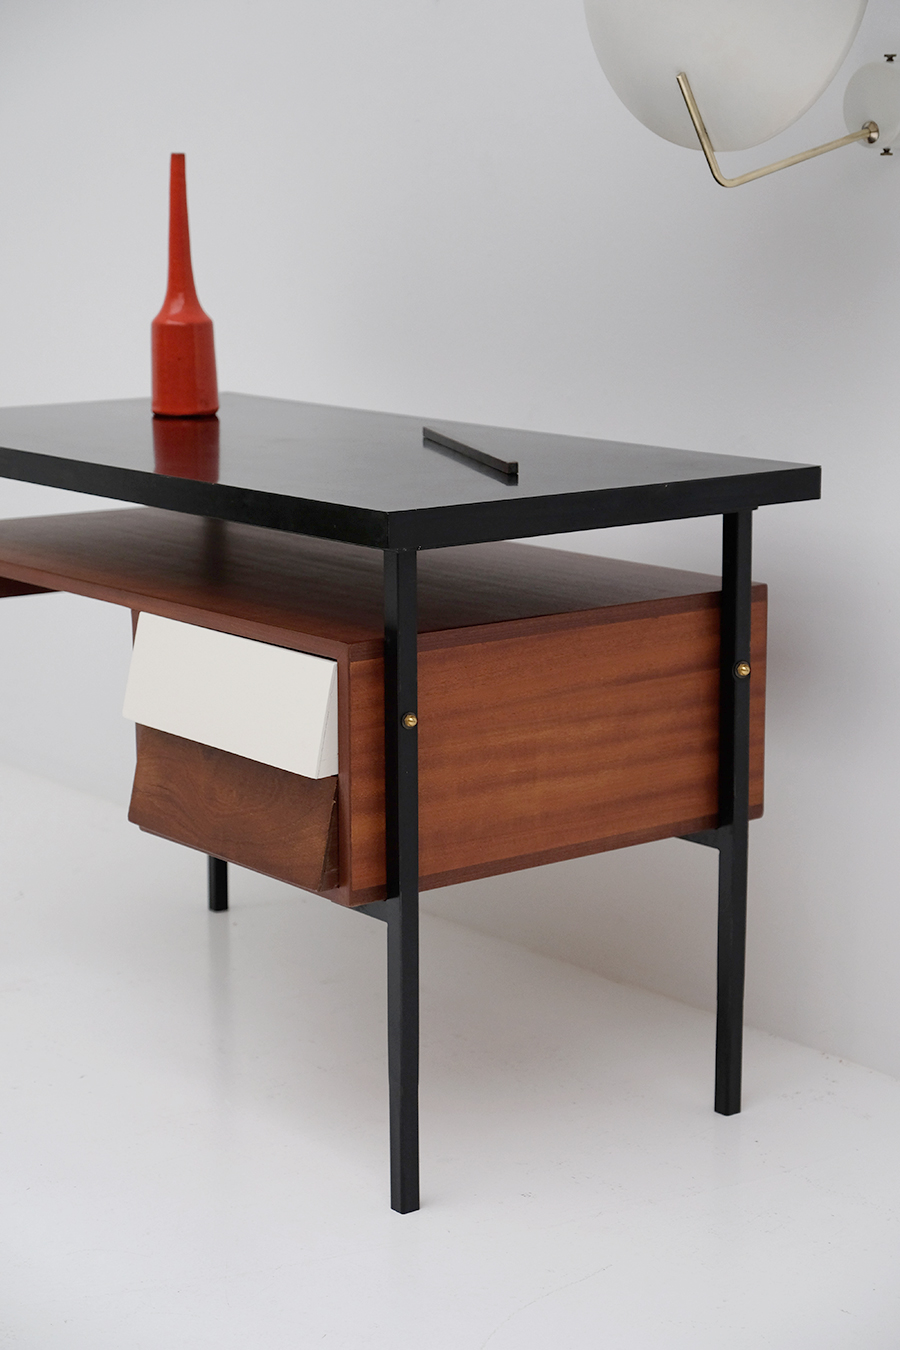 1950s desk with formica table topimage 7